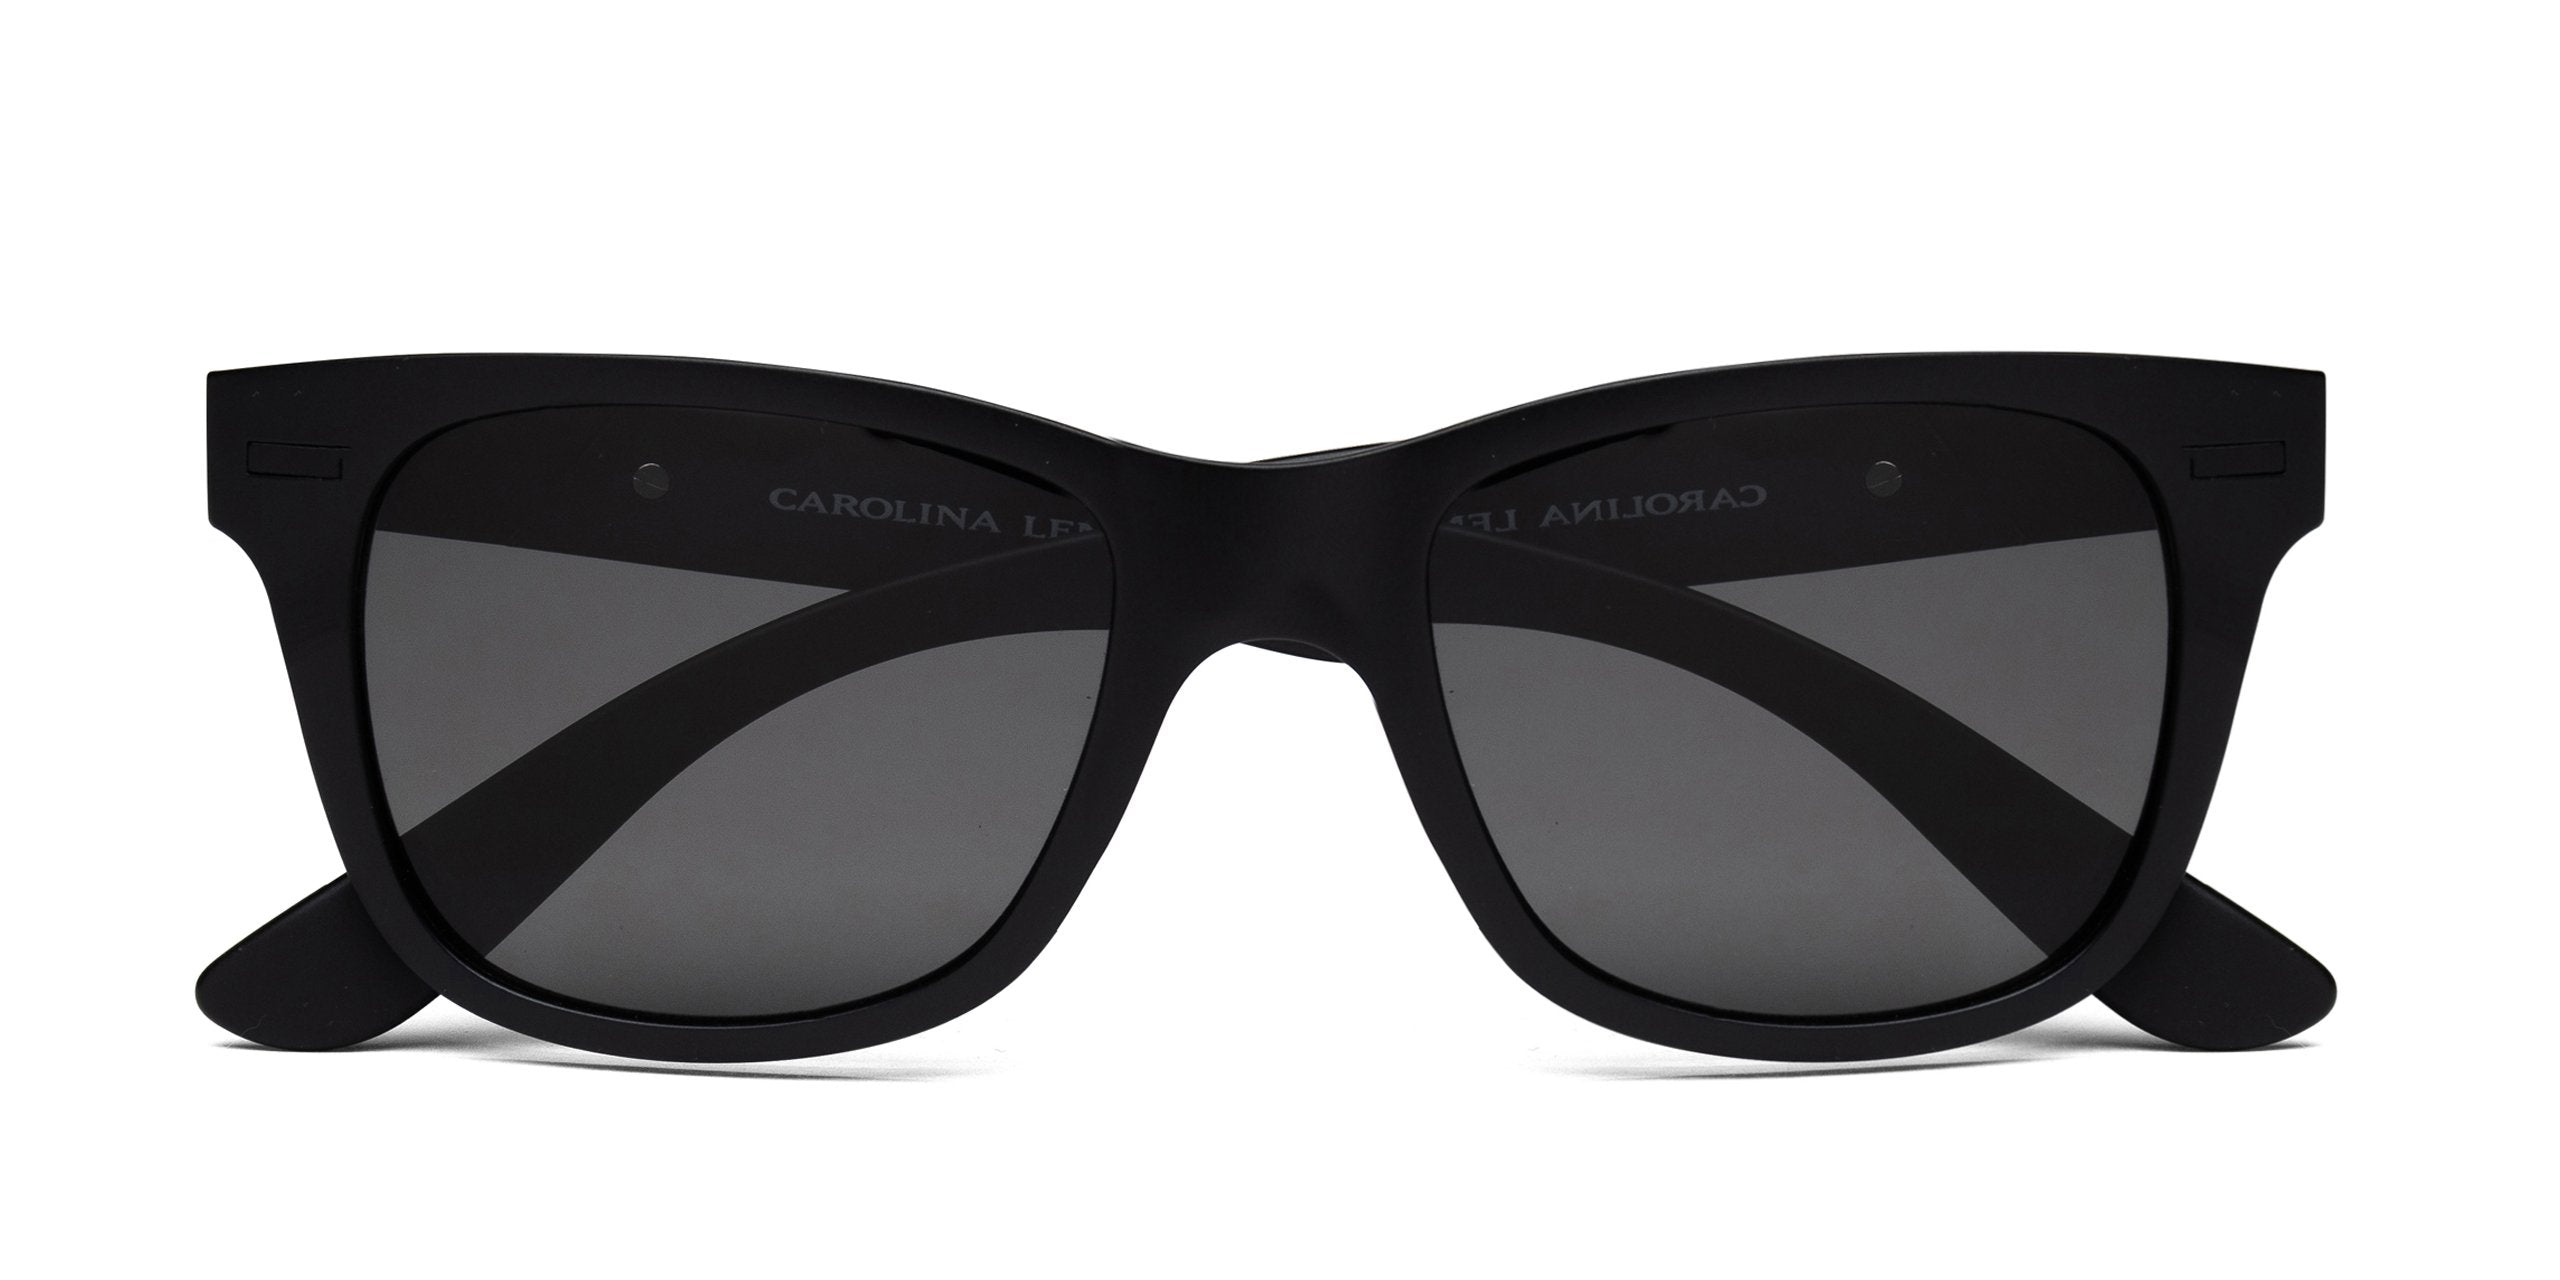 FRAME Matt Black LENS Smoke